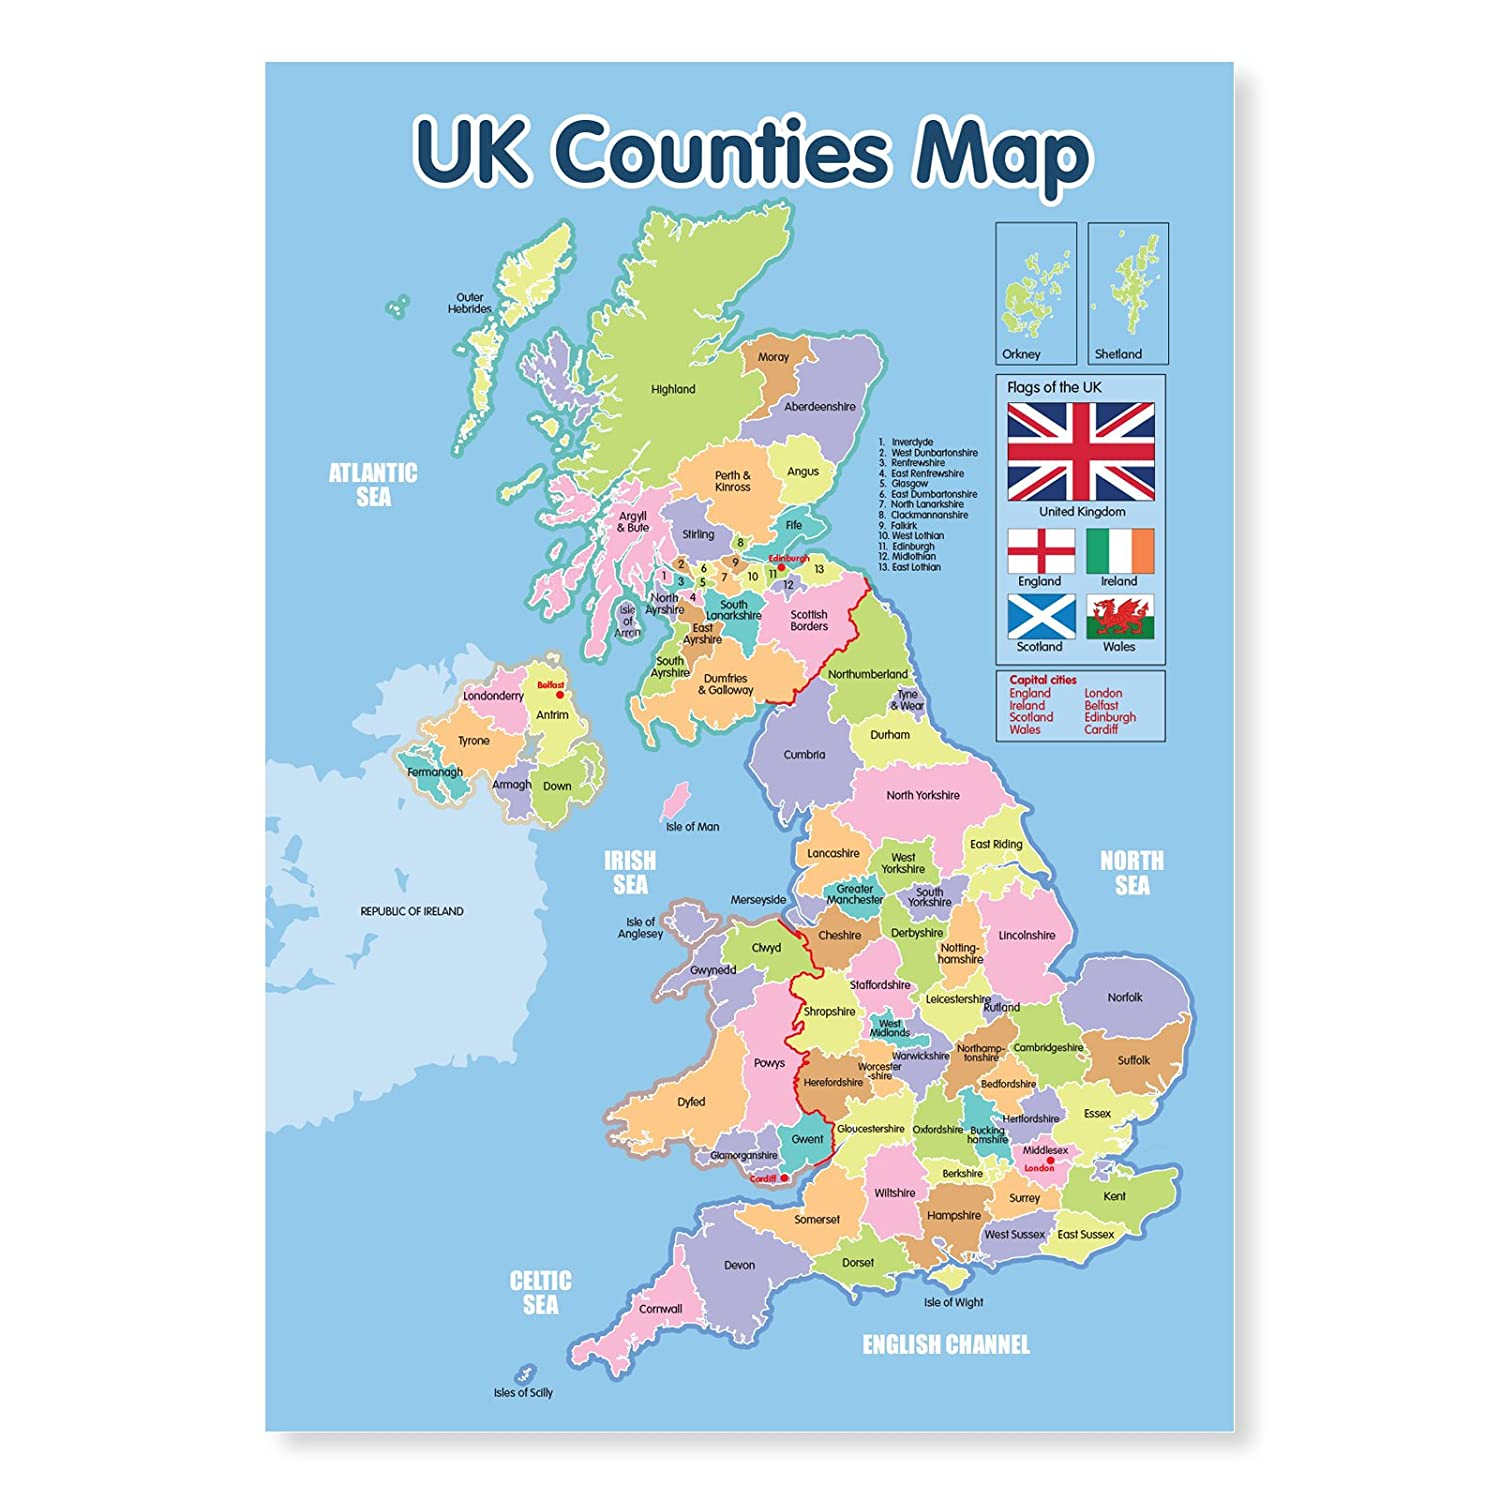 a laminated uk counties map educational poster amazoncouk officeproducts. a laminated uk counties map educational poster amazoncouk